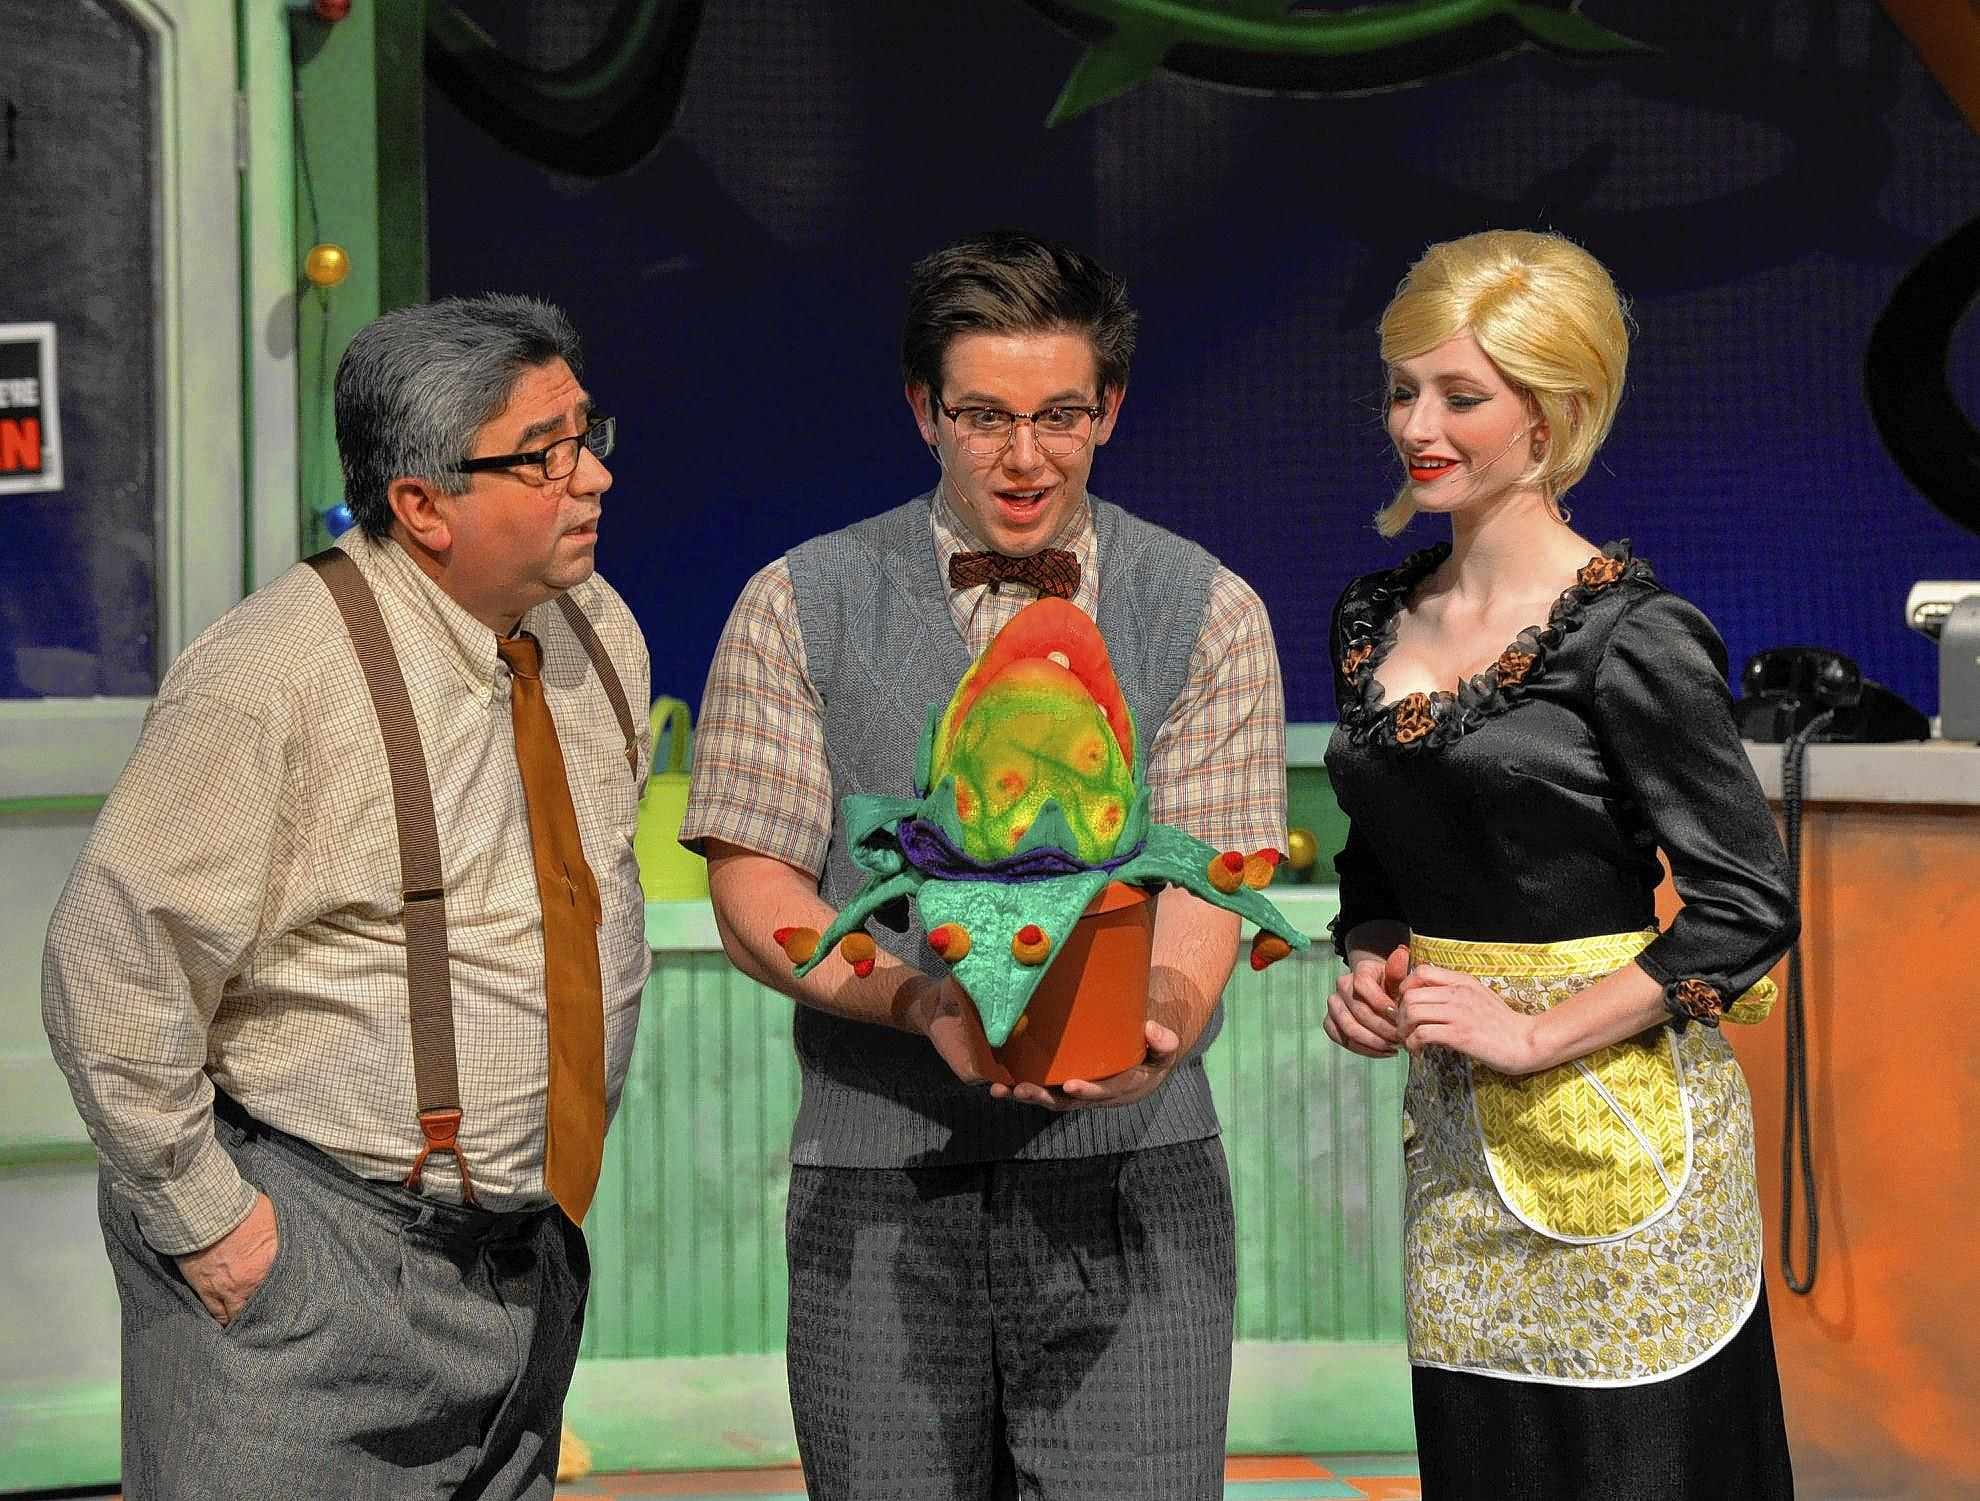 (L to R) Nick Englesson, Kevin Riddagh and Jessica Minor look at Audrey II in Cedar Crest's Little Shop of Horrors.